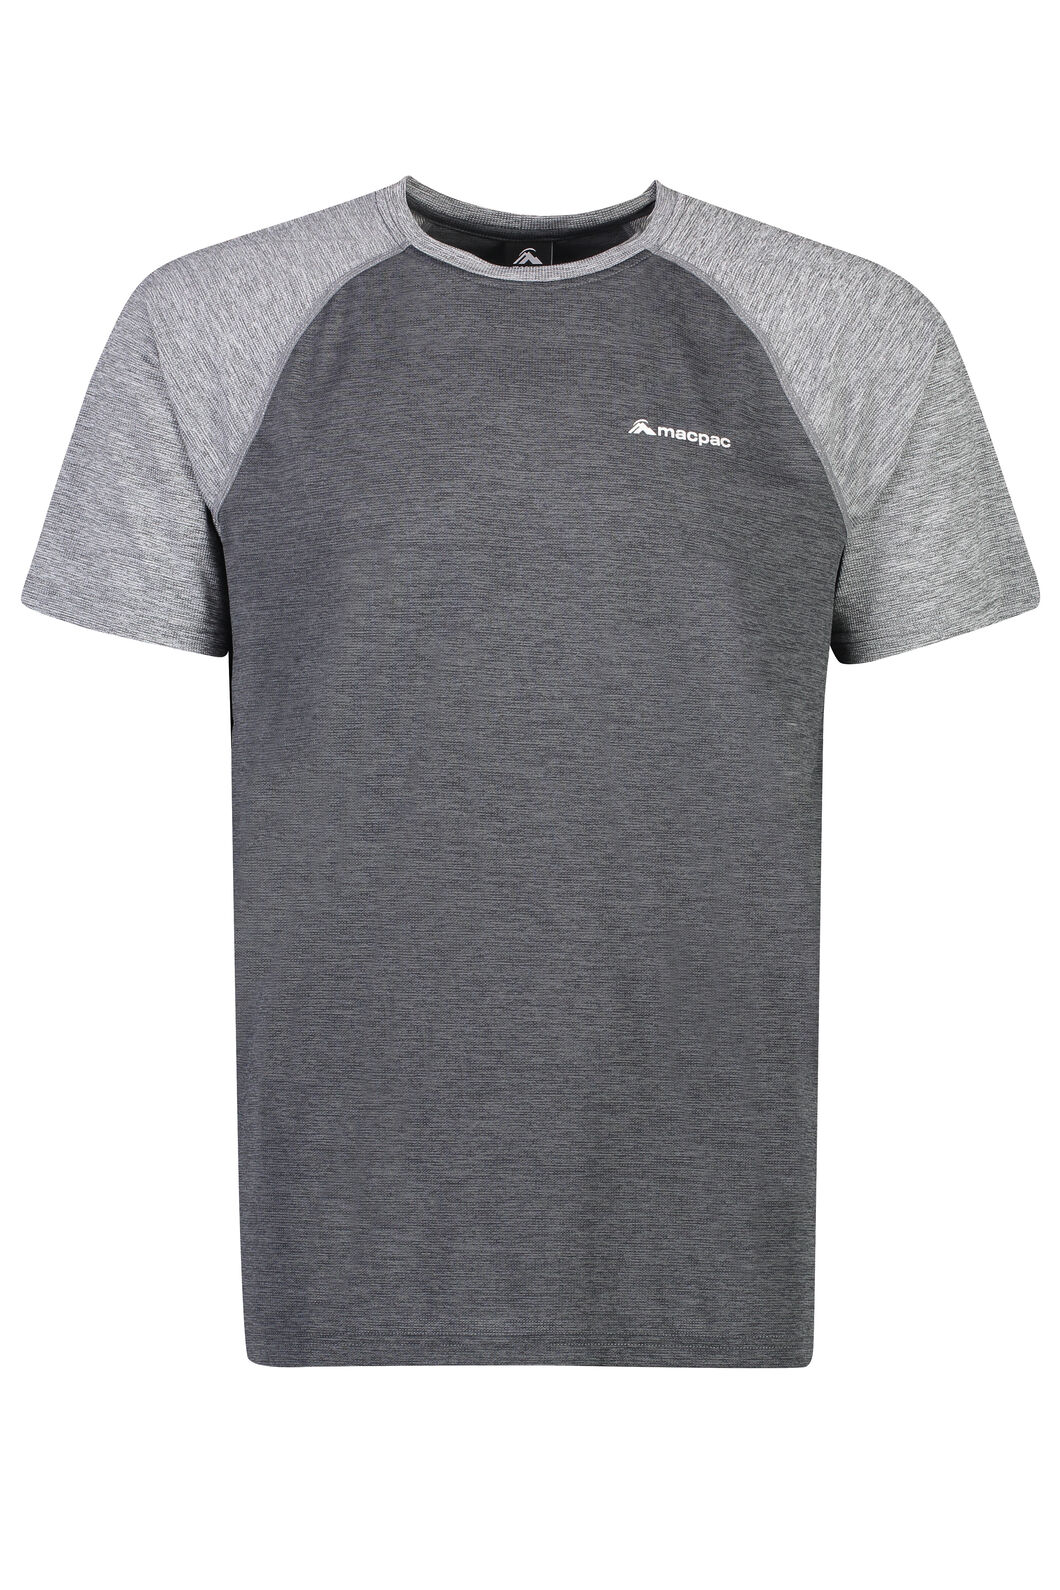 Macpac Take a Hike Short Sleeve Top - Men's, Iron Gate, hi-res